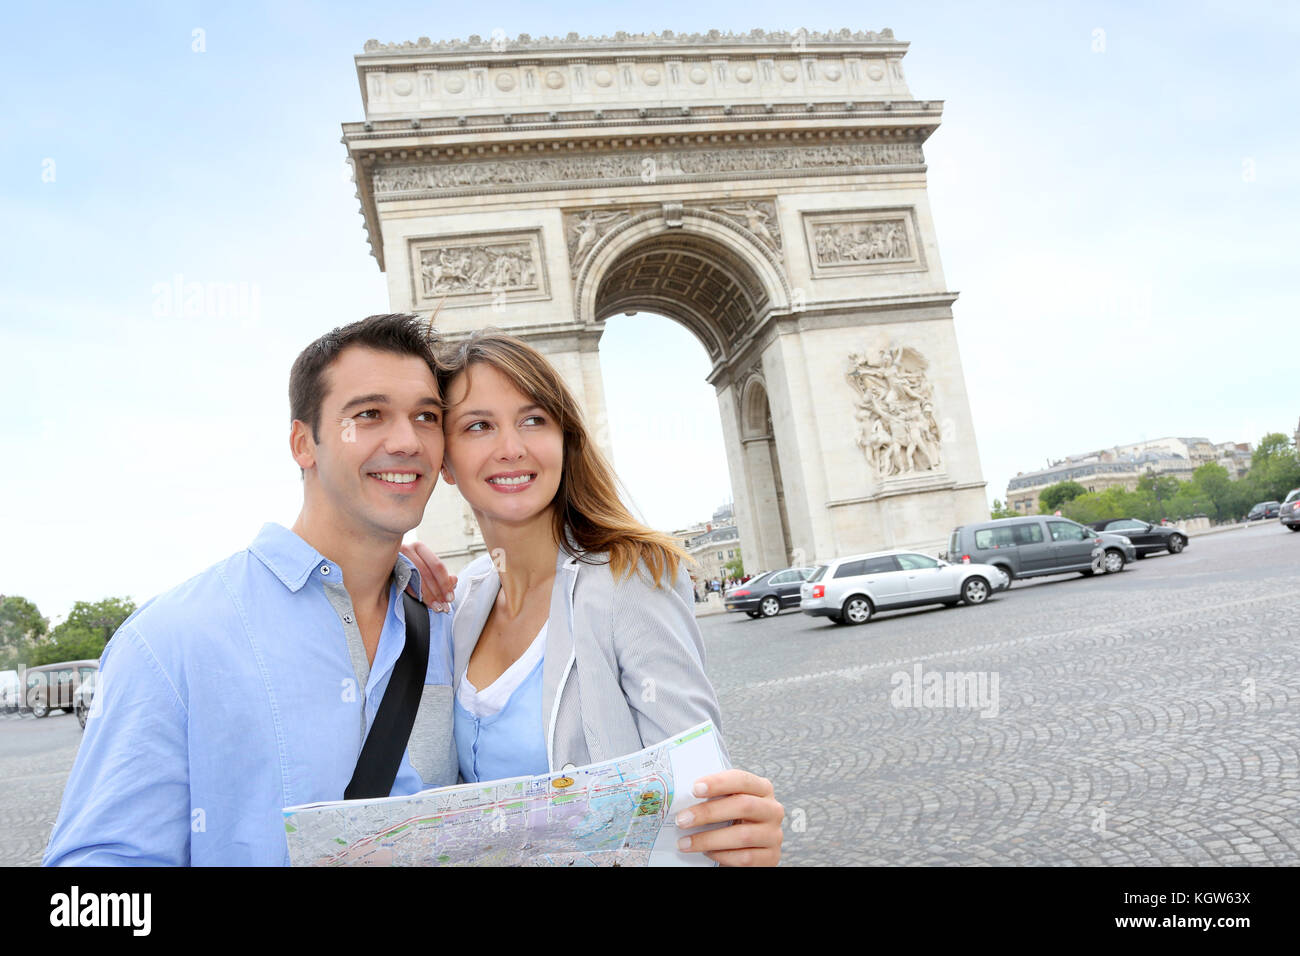 Couple reading map in front of the Arch of Triumph - Stock Image